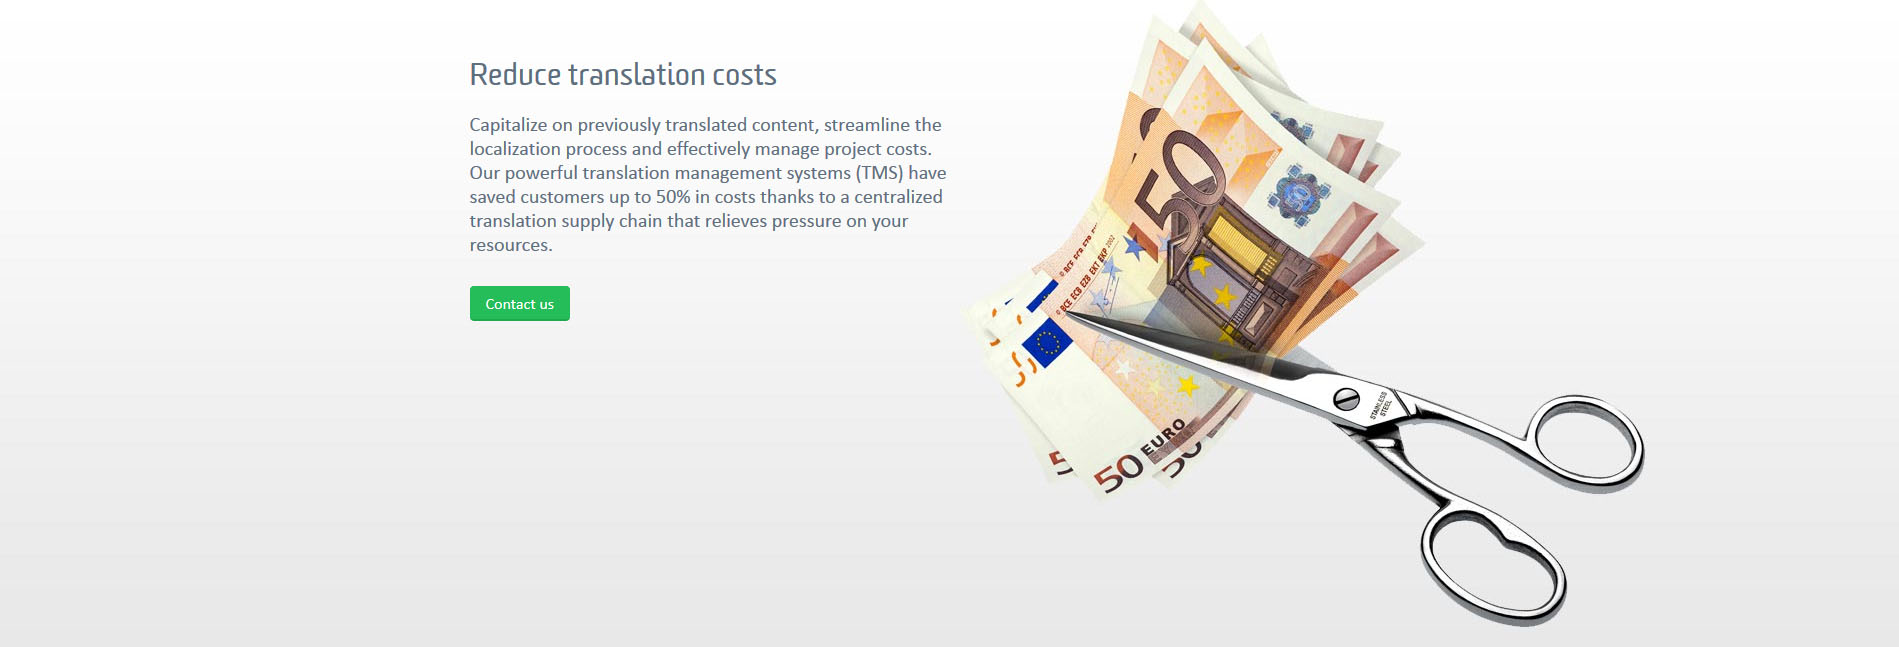 Part of the website of SDL with a description to reduce translation costs